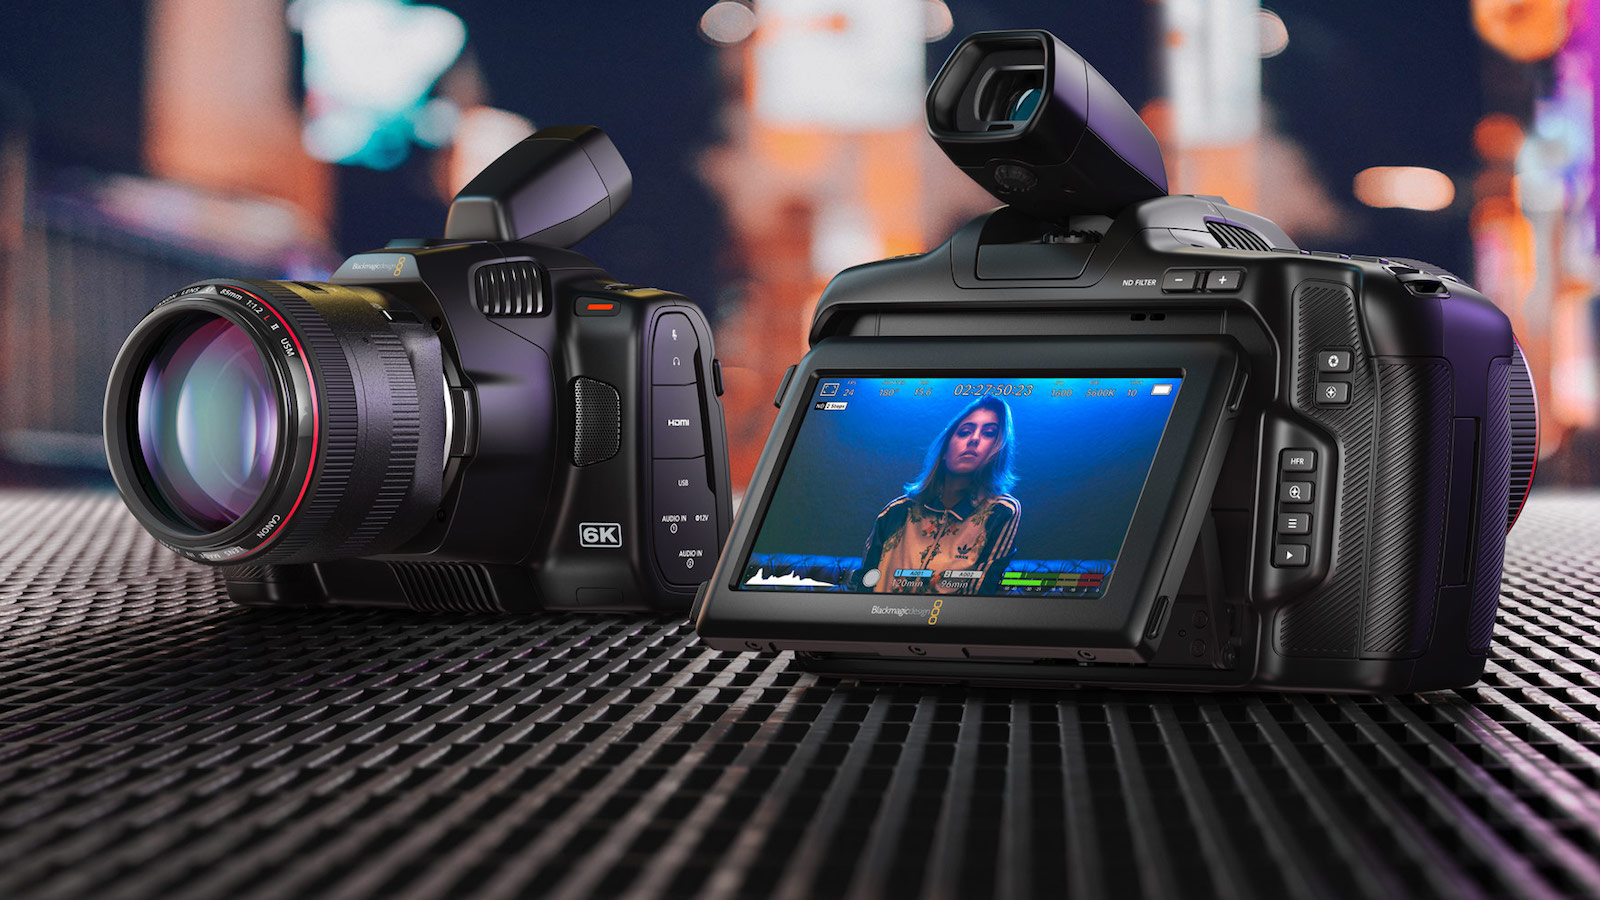 Blackmagic Pocket Cinema Camera 6K Pro features up to six ND filters